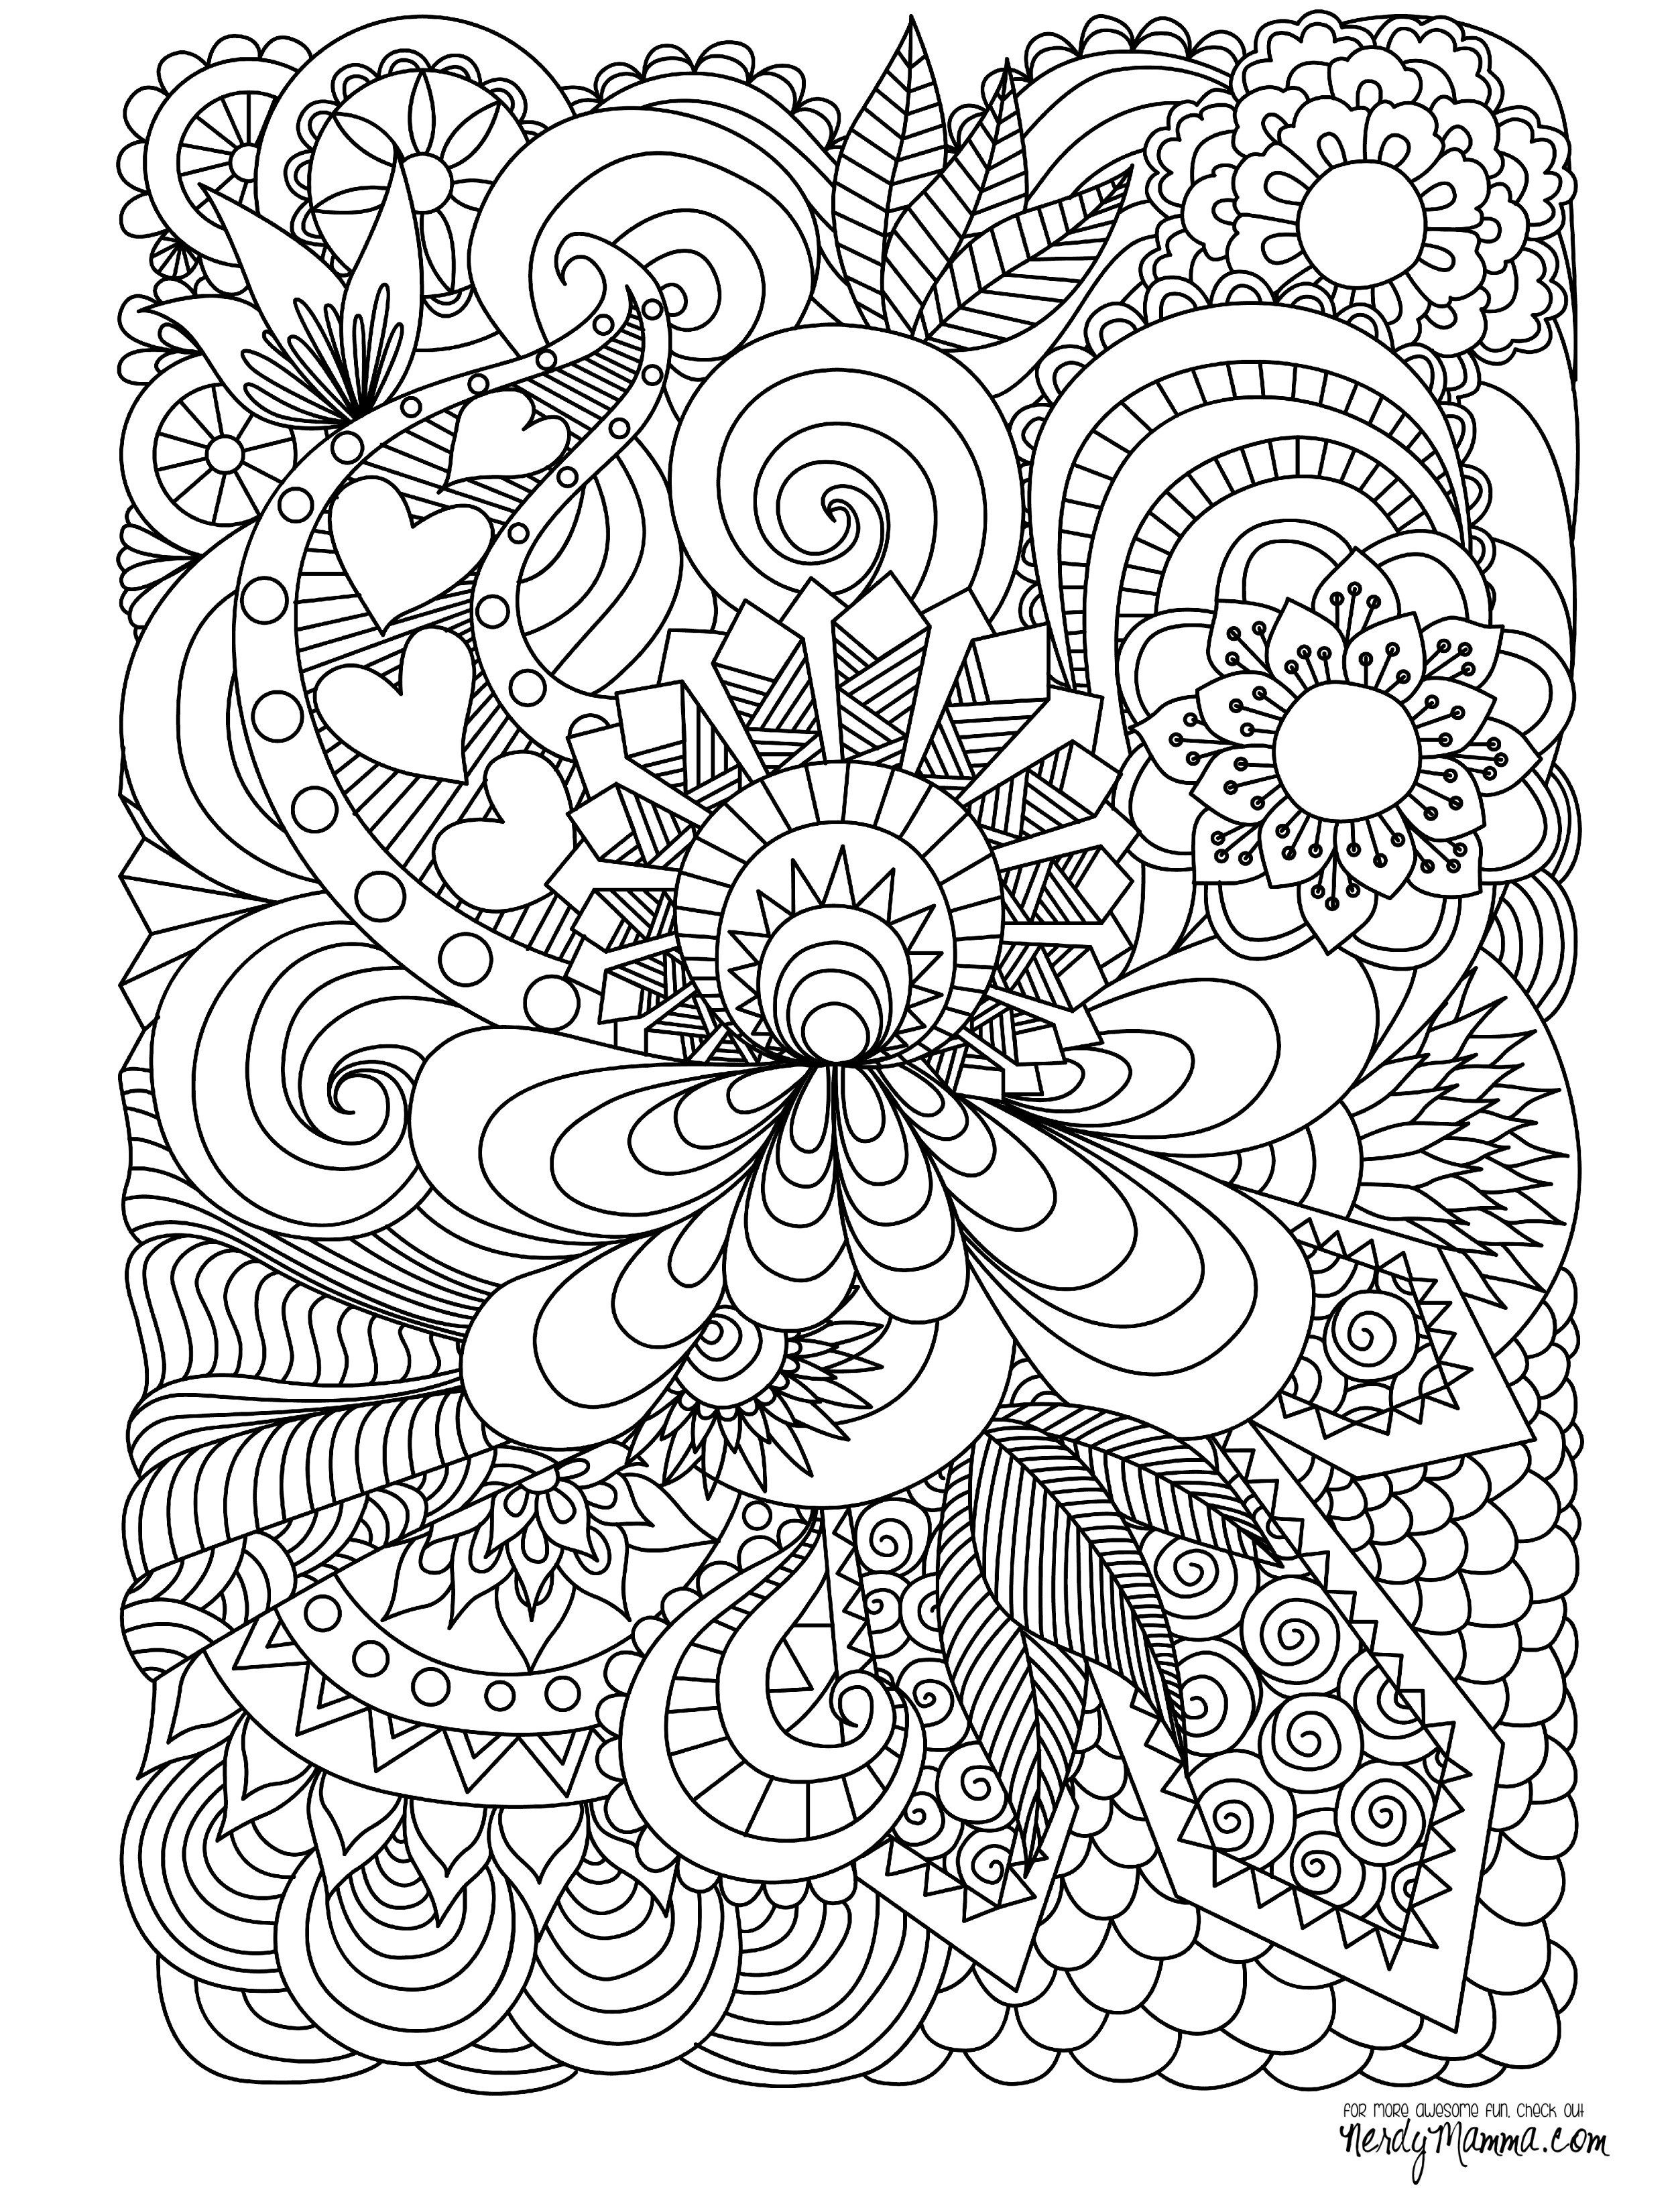 23 free printable insect u0026 animal coloring pages